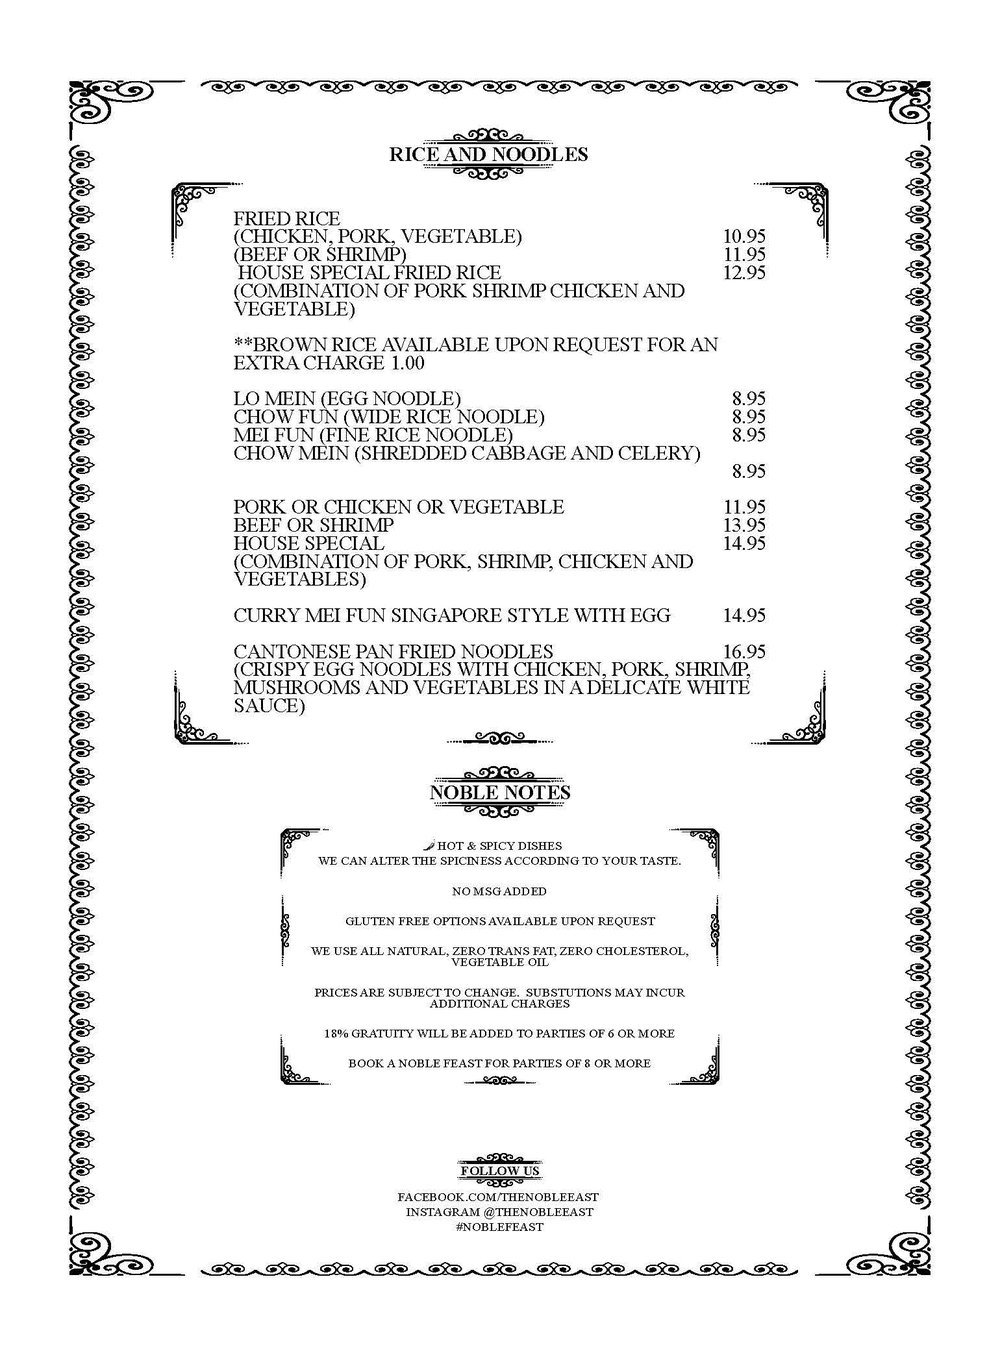 NOBLE EAST DINE IN MENU FOR AMY WEBSITE_Page_09.jpg